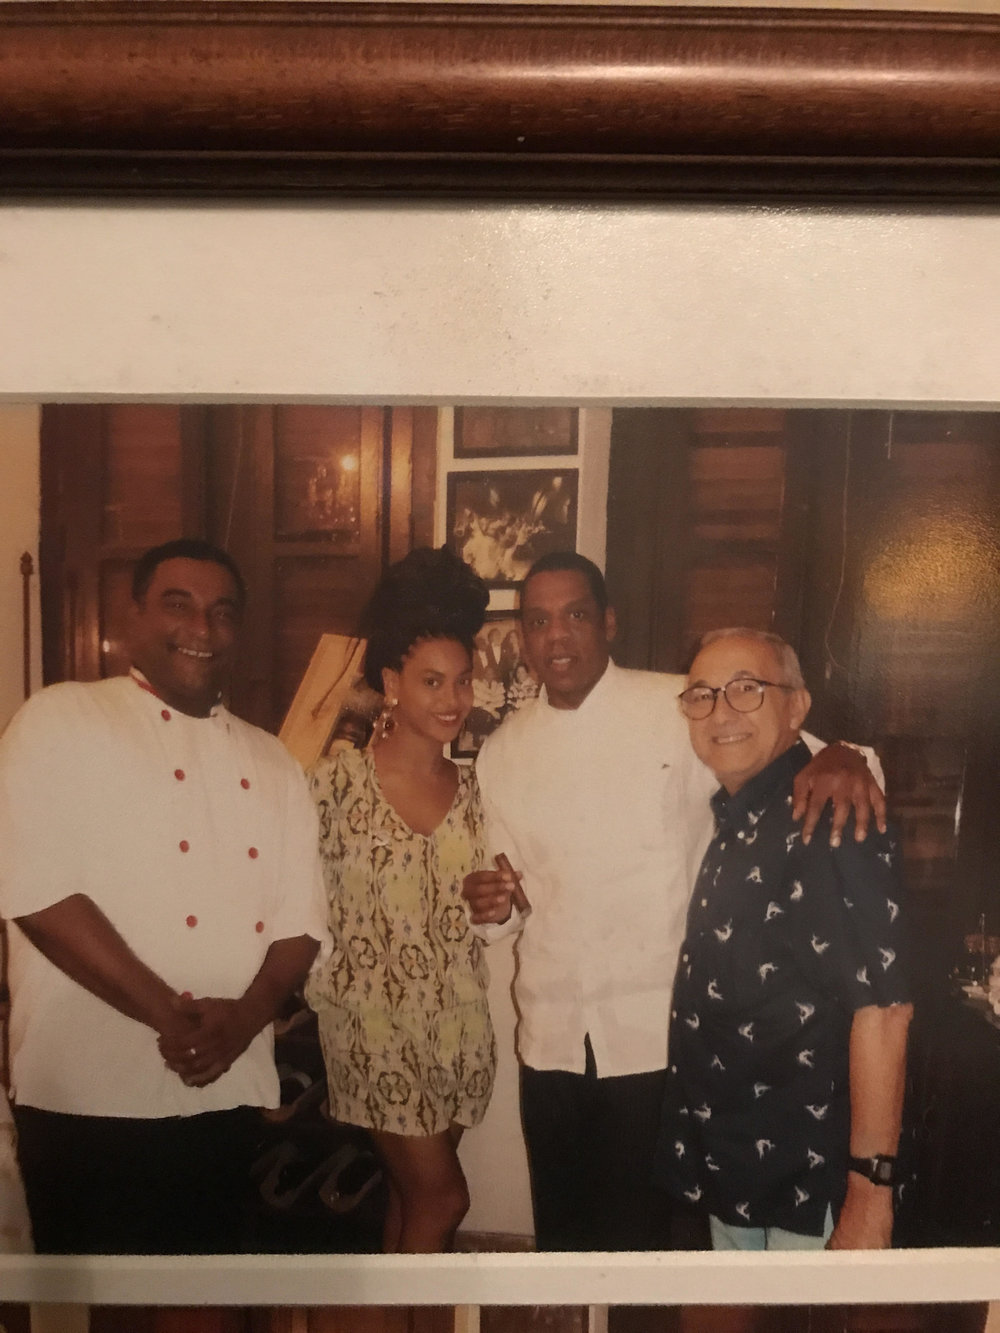 Photo of Beyonce and Jay-Z at restaurant  Paladar San Cristobal